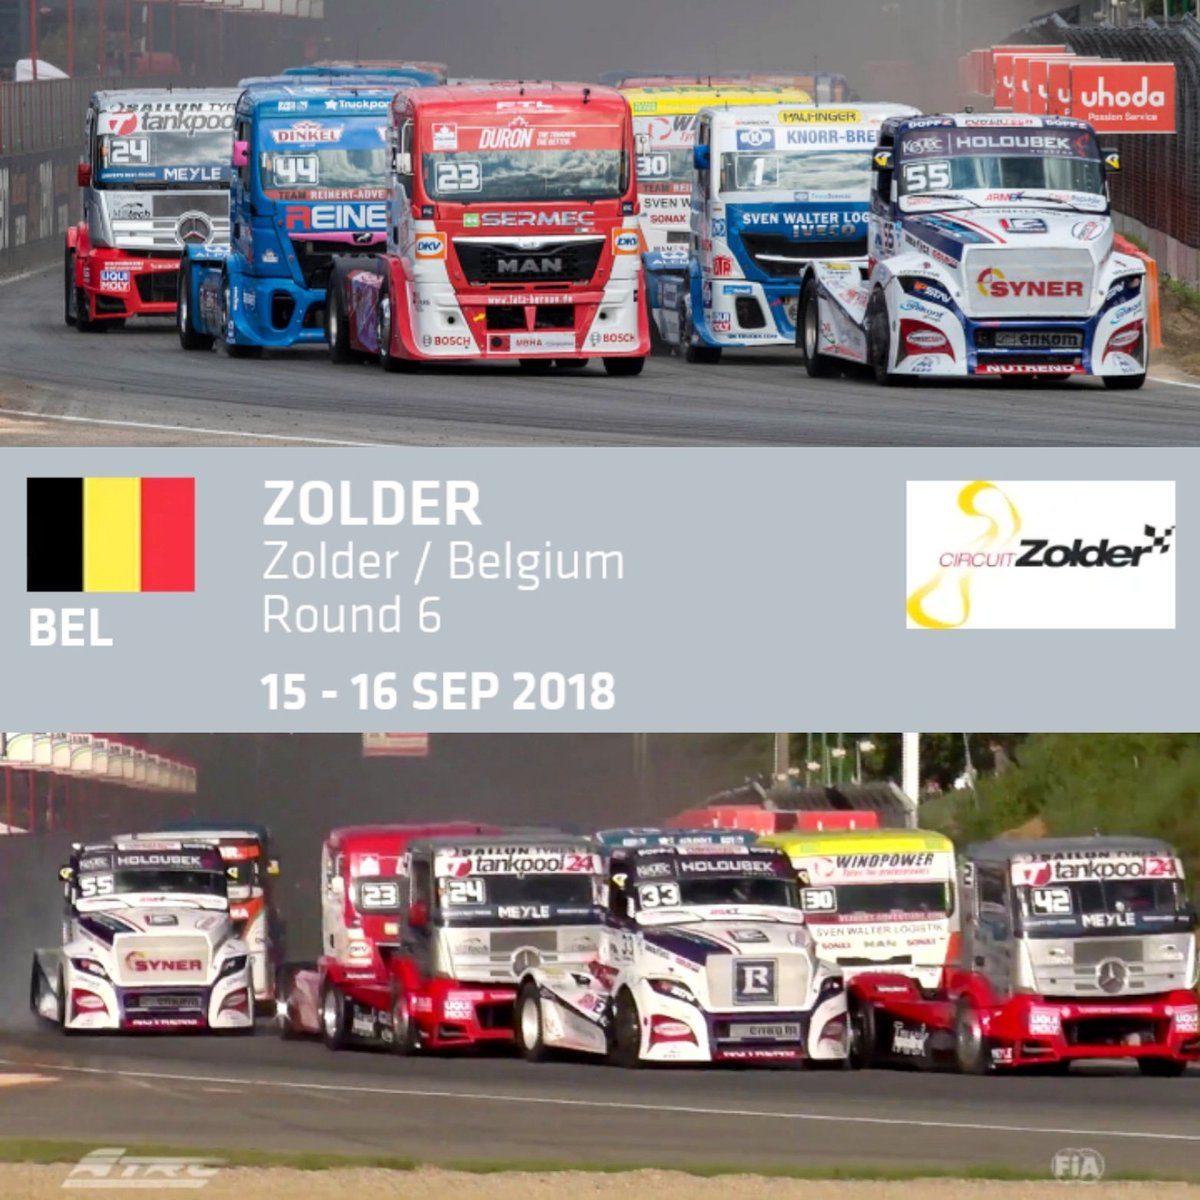 Circuito Zolder Belgica : Checkered floor at zolder race circuit belgium stock photo